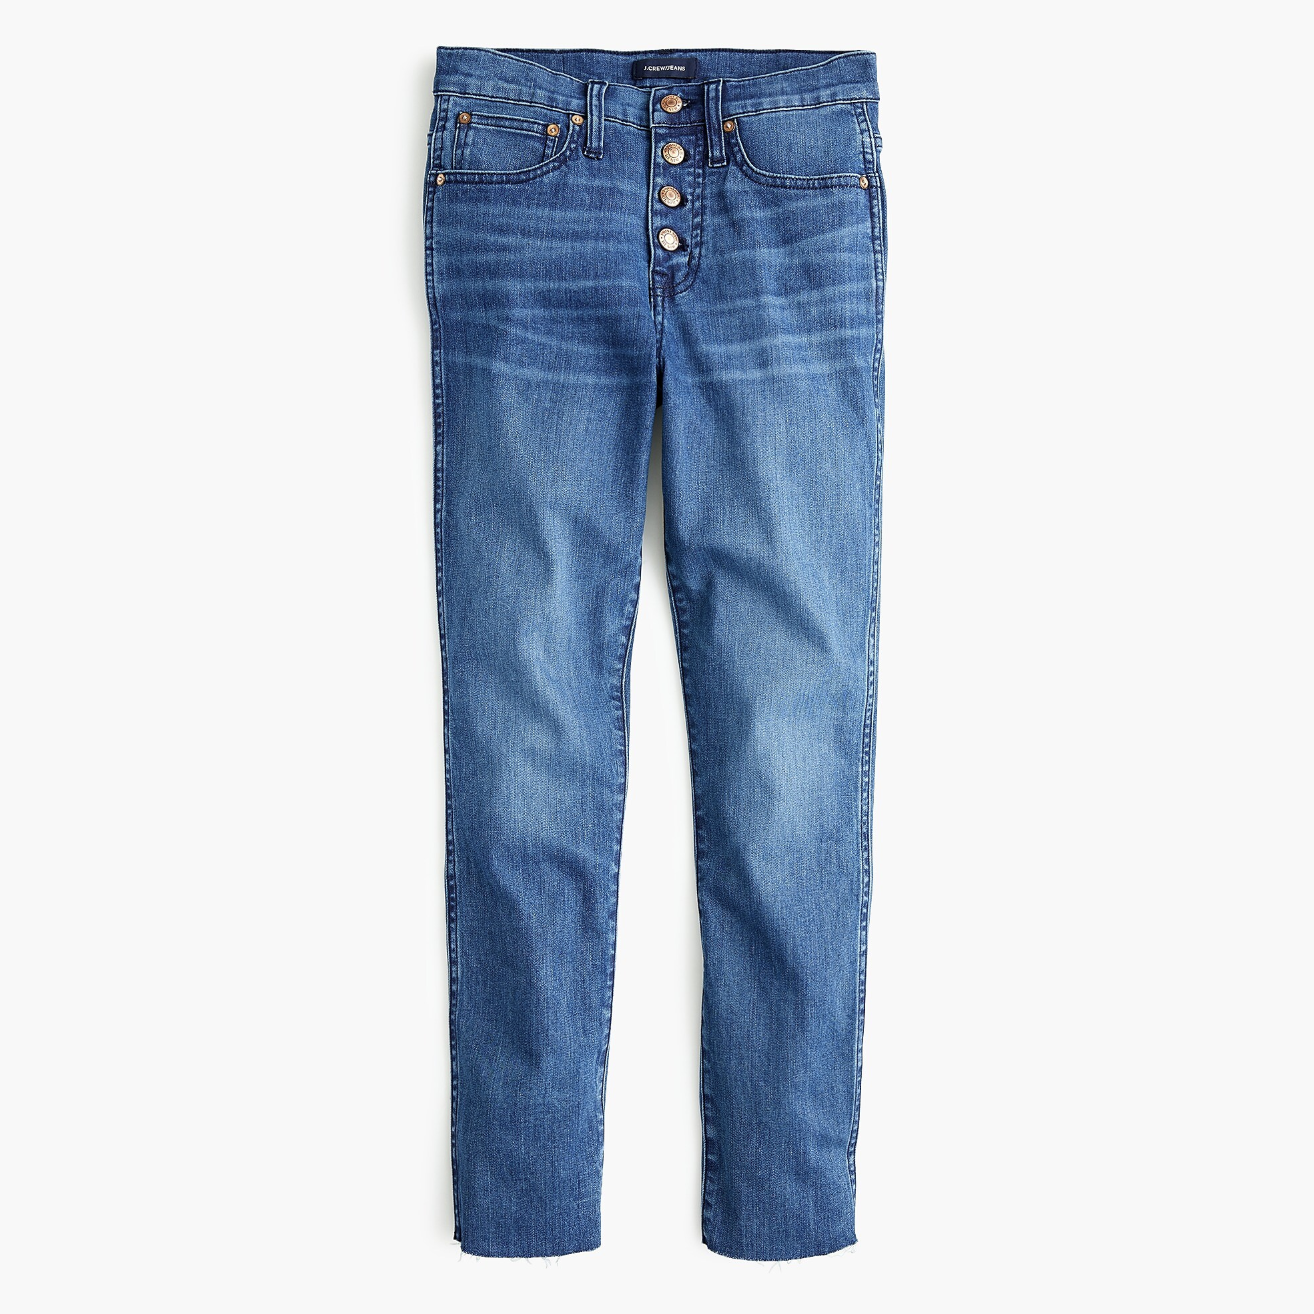 J.Crew Demi-boot Jeans with Button Fly